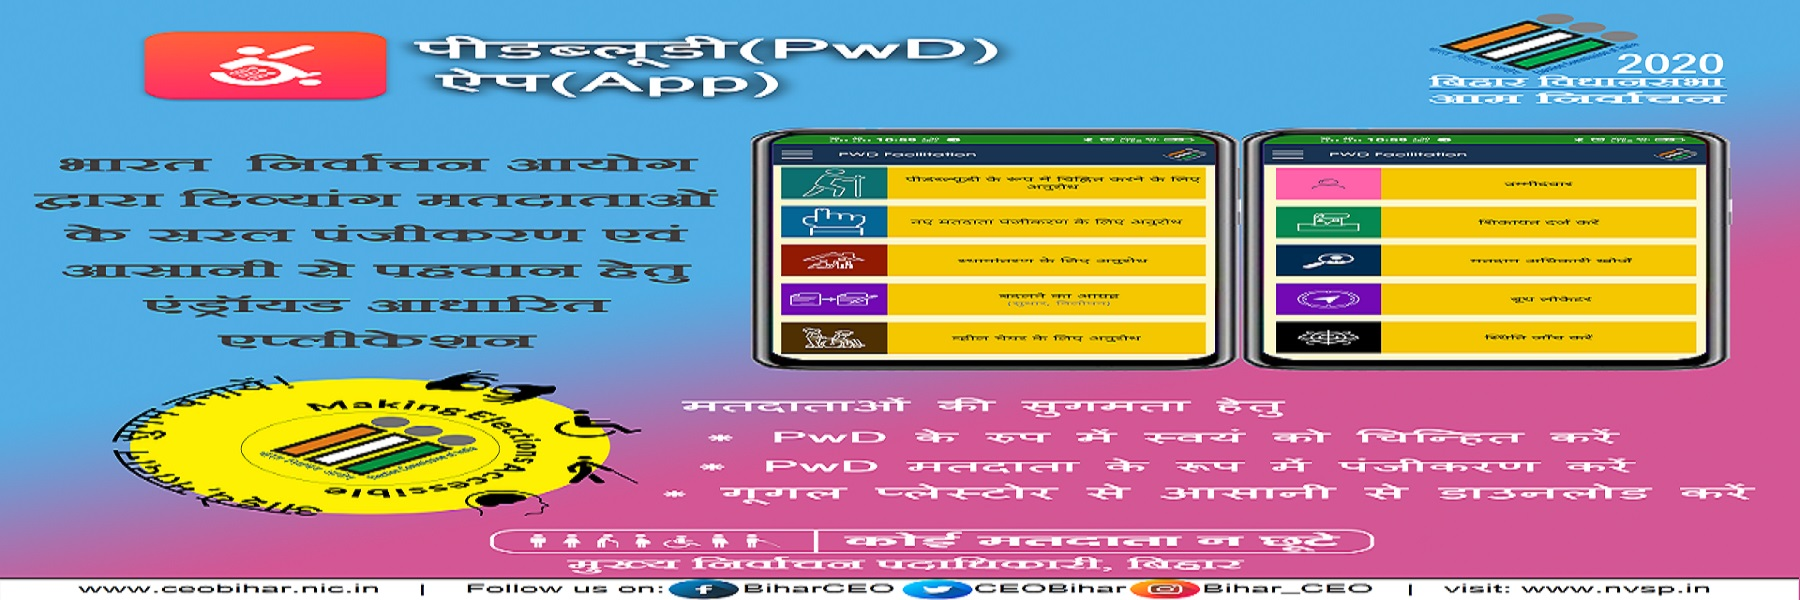 PWD _ Mobile